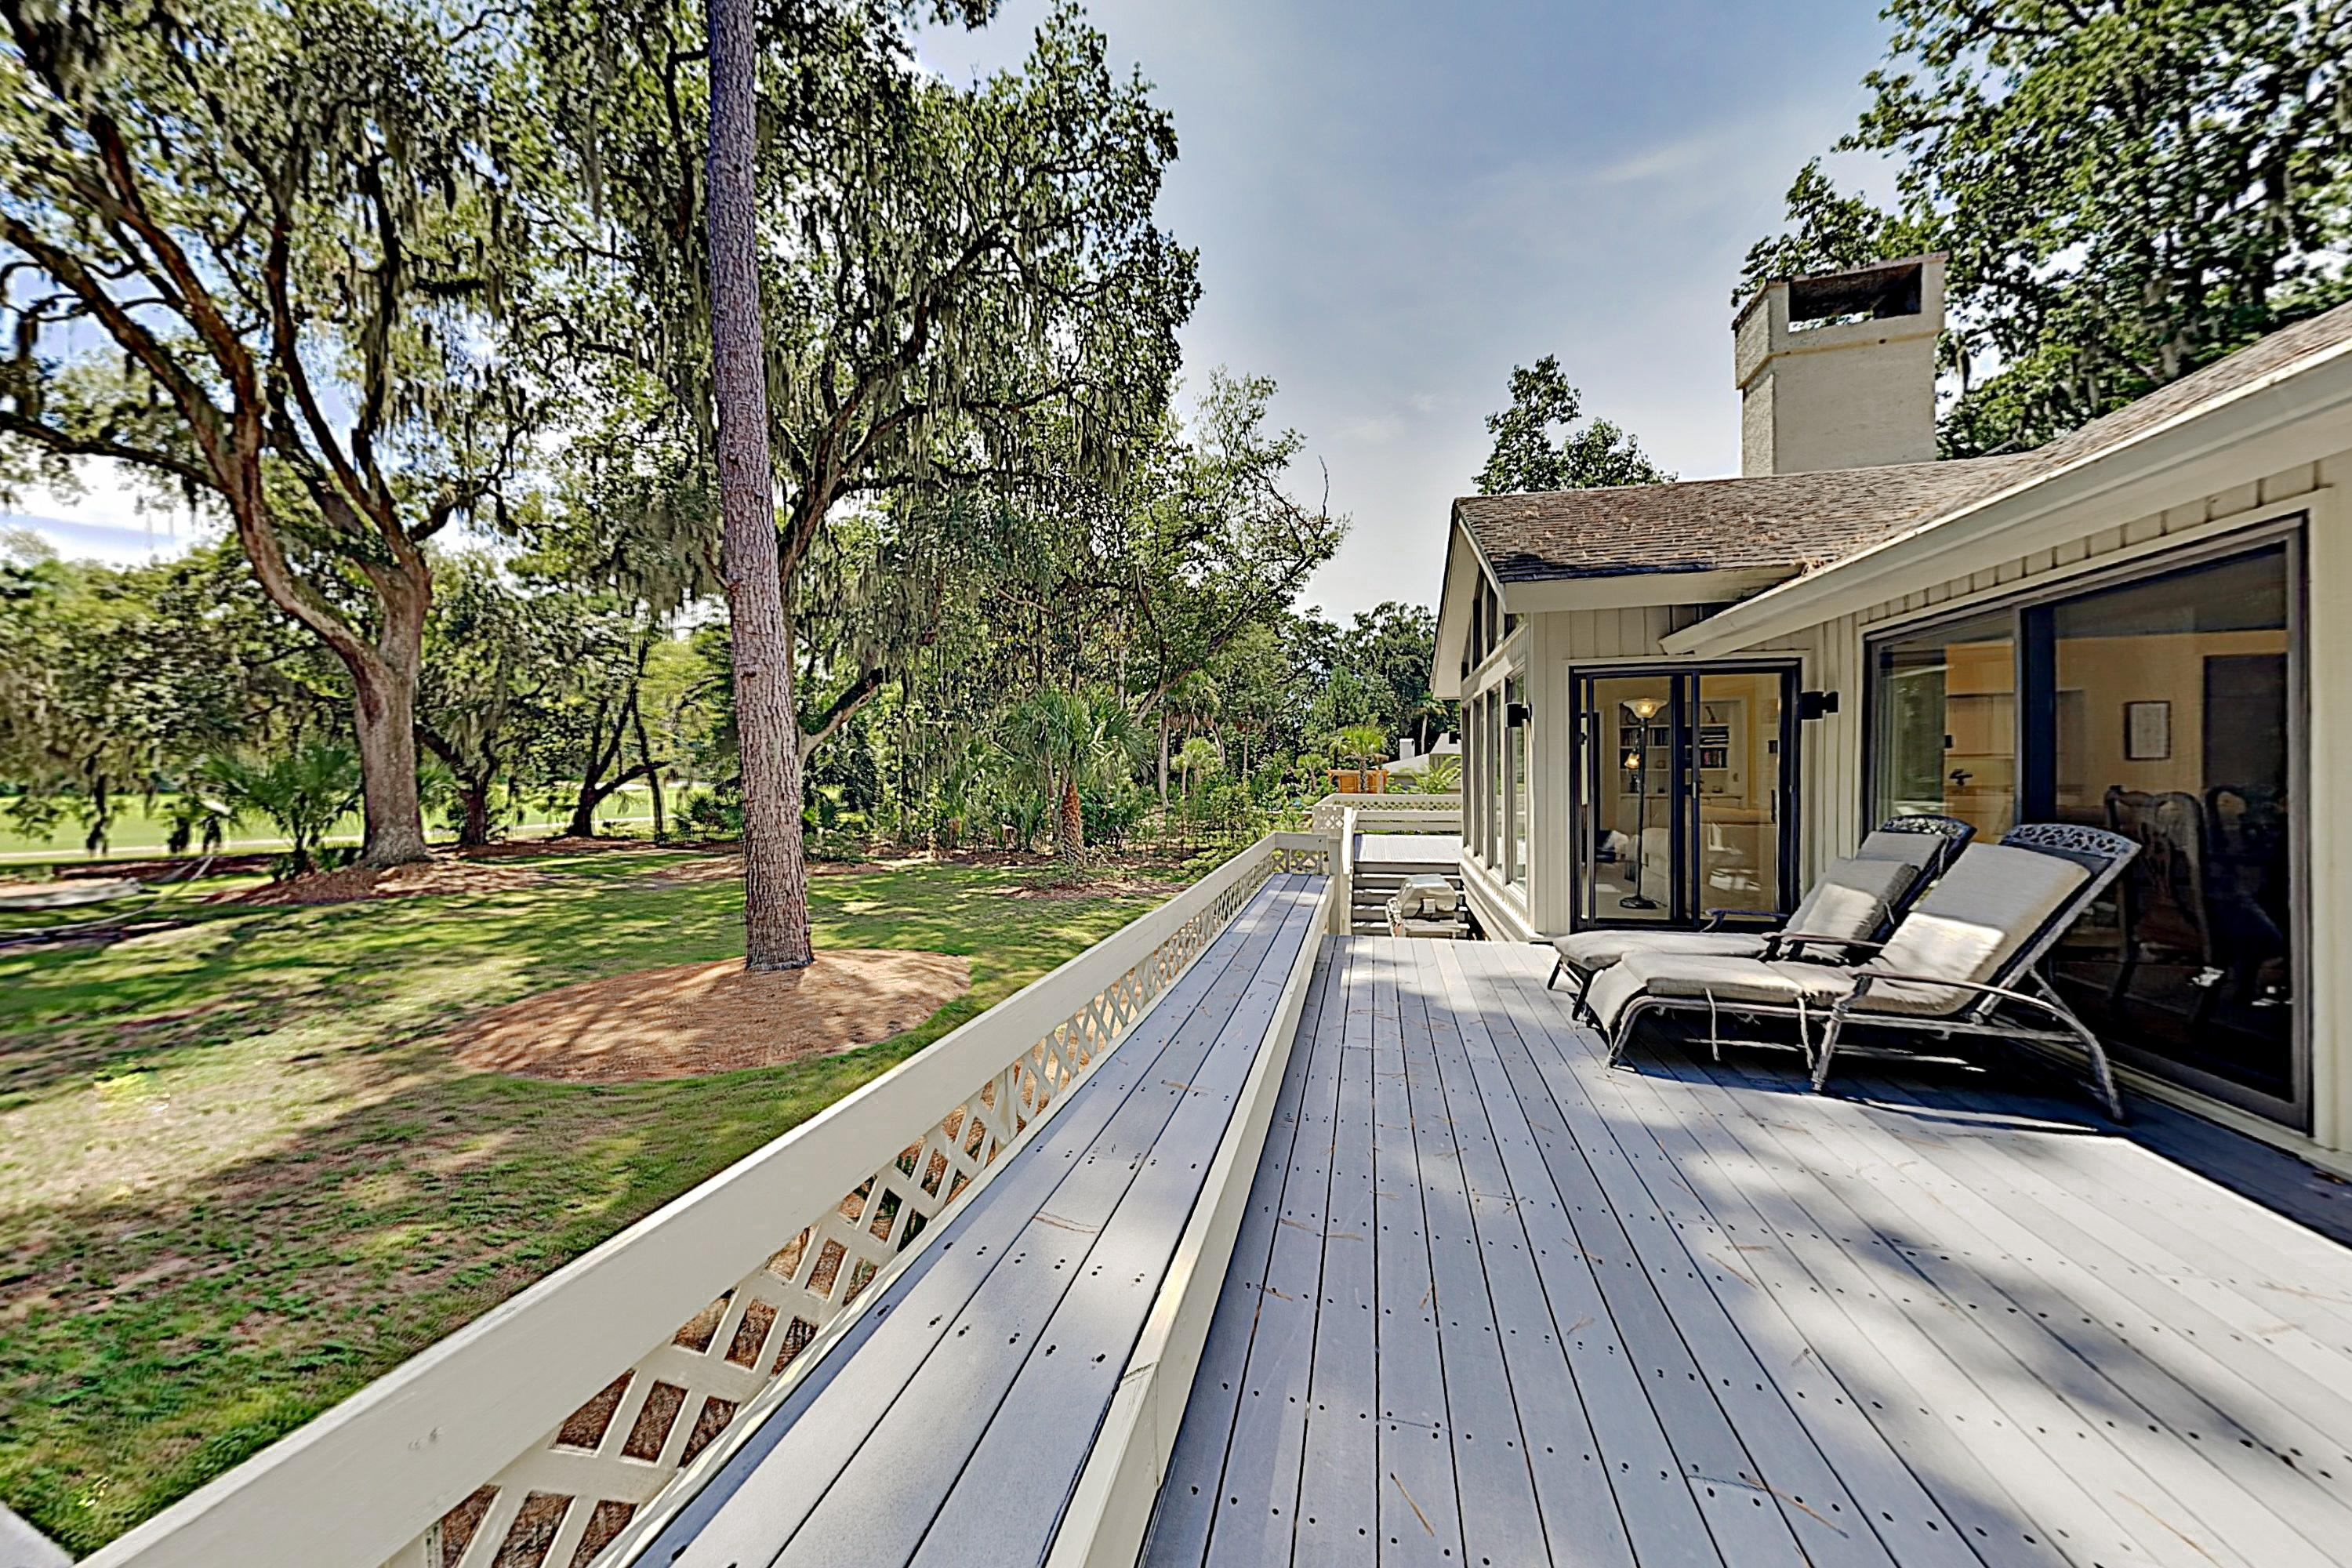 Property Image 1 - Expansive Bright Home with Gazebo in Hilton Head